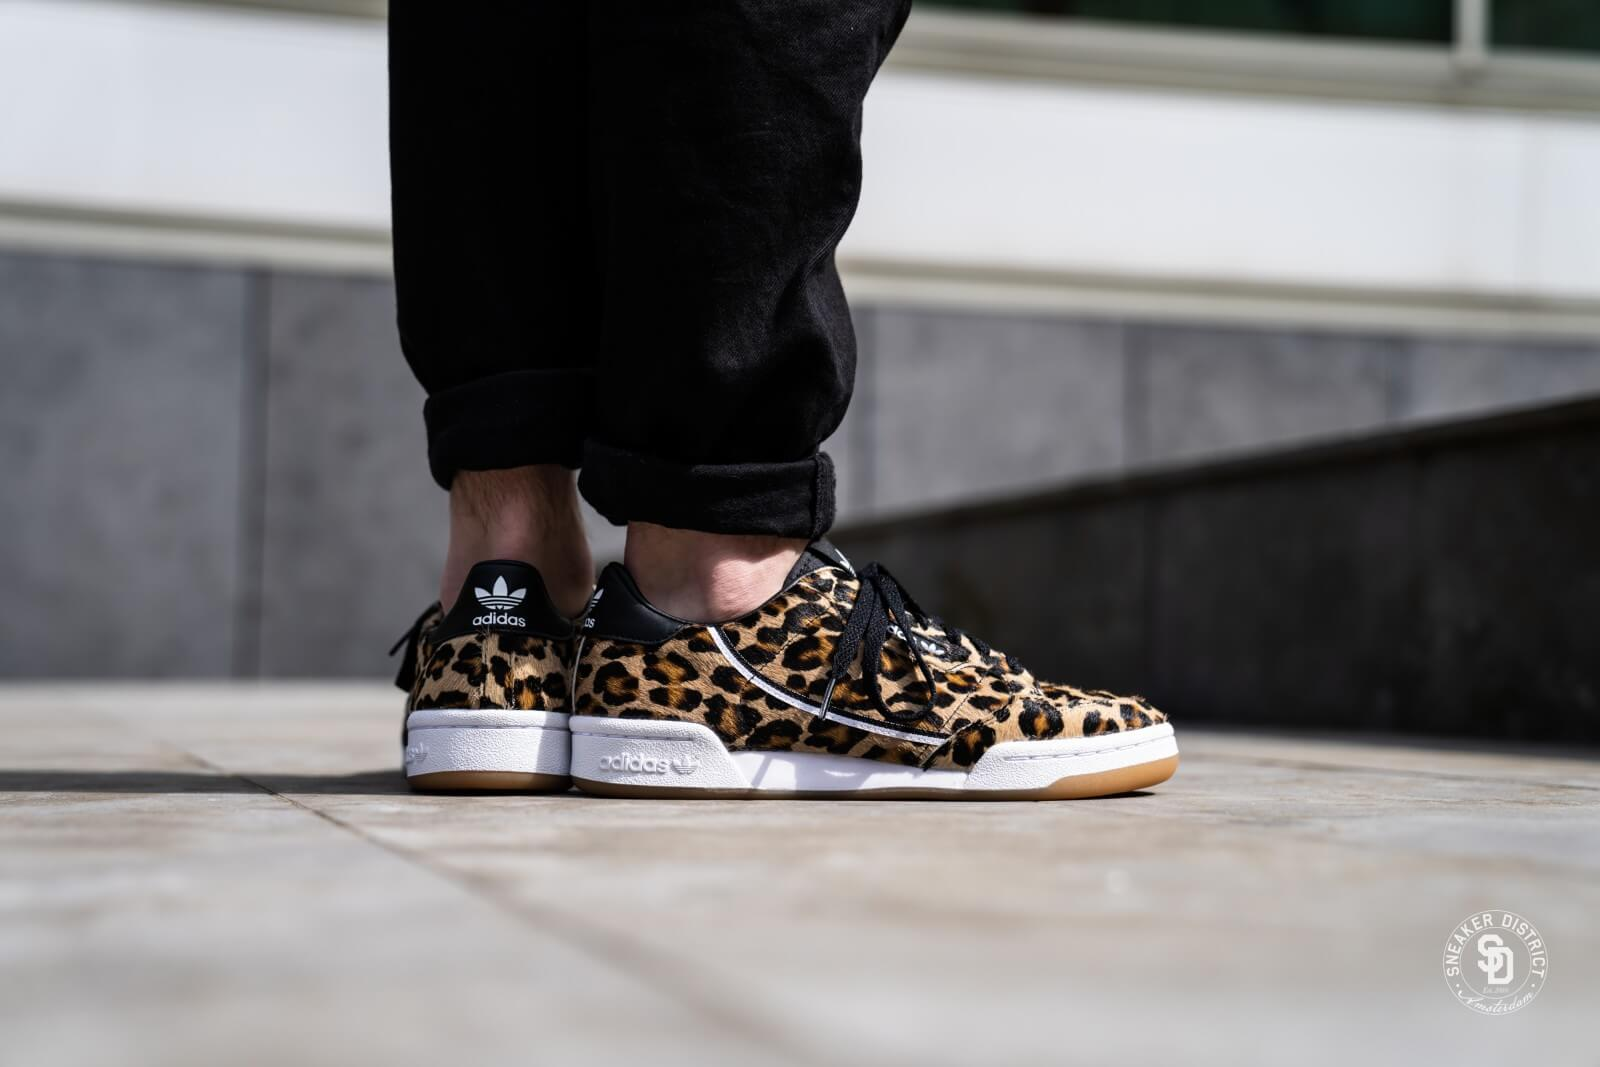 Adidas Continental 80 Leopard Core Black/Footwear White - F33994